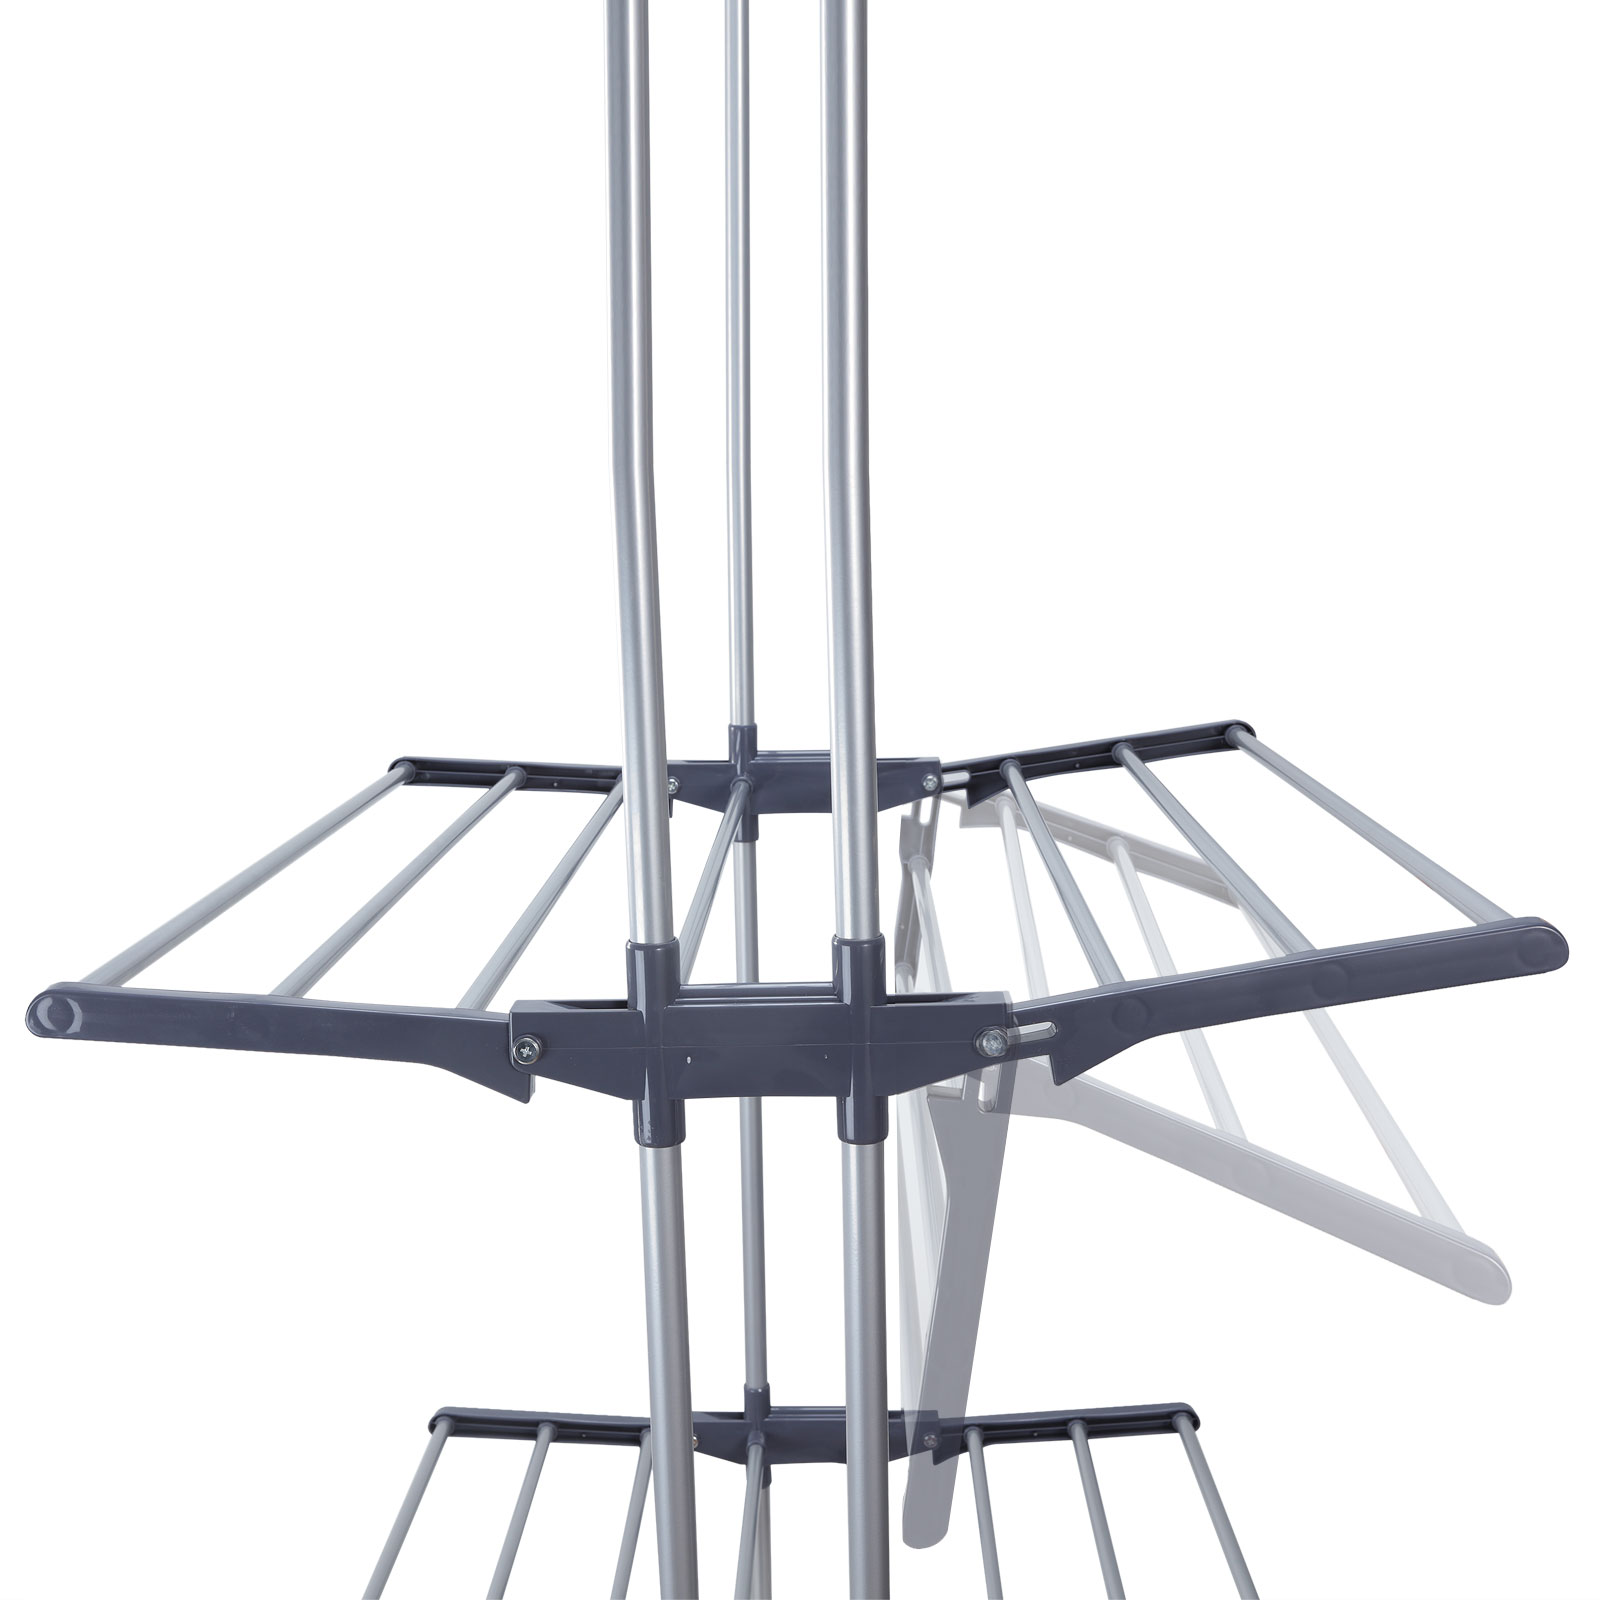 foldable 6 tiers clothes airer indoor laundry drying rack horse garment hanger ebay. Black Bedroom Furniture Sets. Home Design Ideas